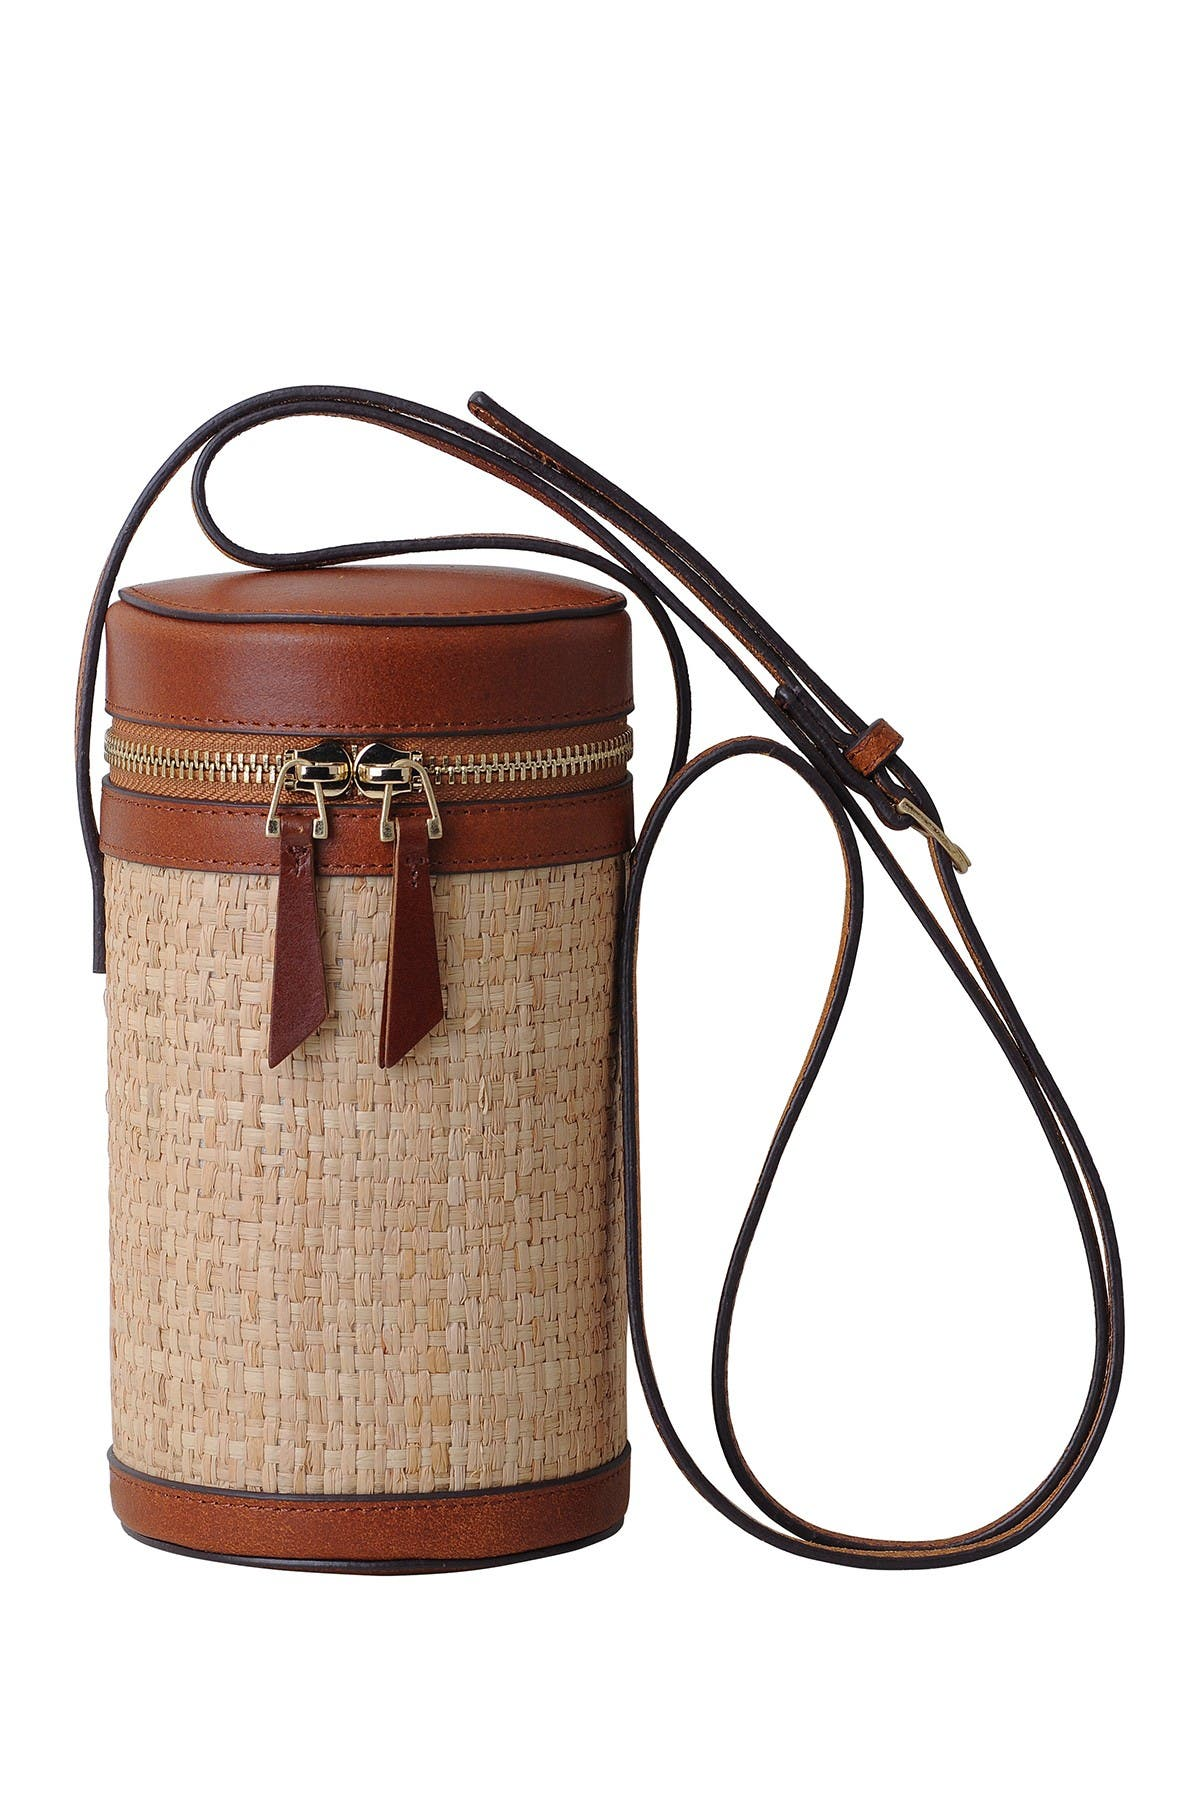 Image of Most Wanted USA Woven Cylindrical Leather Trim Bag